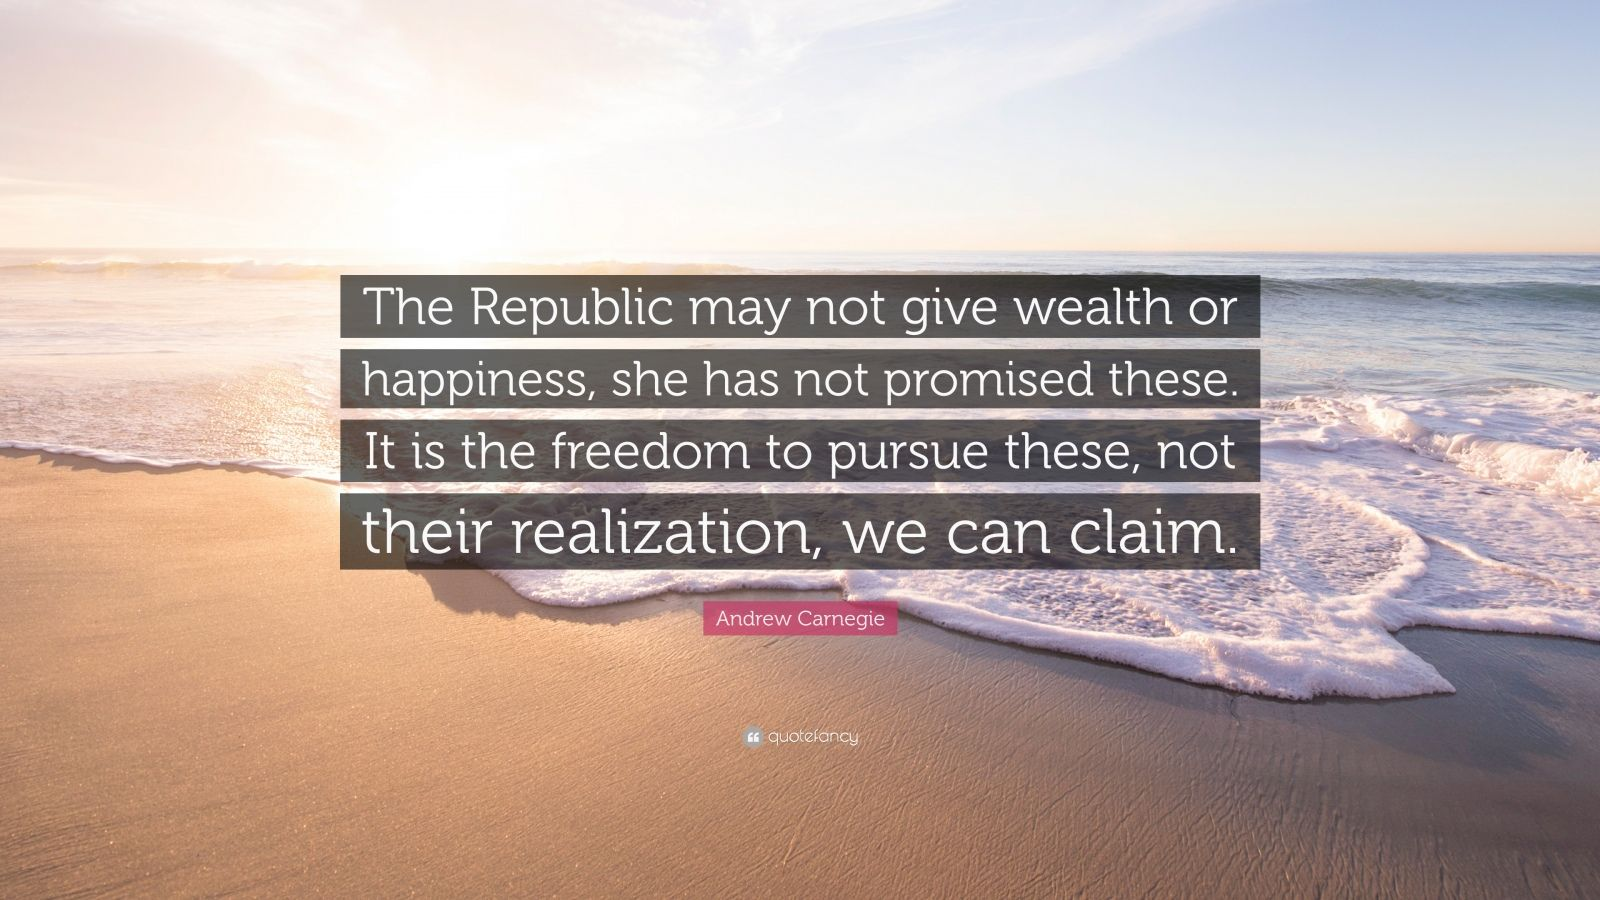 """Andrew Carnegie Quote: """"The Republic may not give wealth or happiness, she has not promised these. It is the freedom to pursue these, not their realization, we can claim."""""""